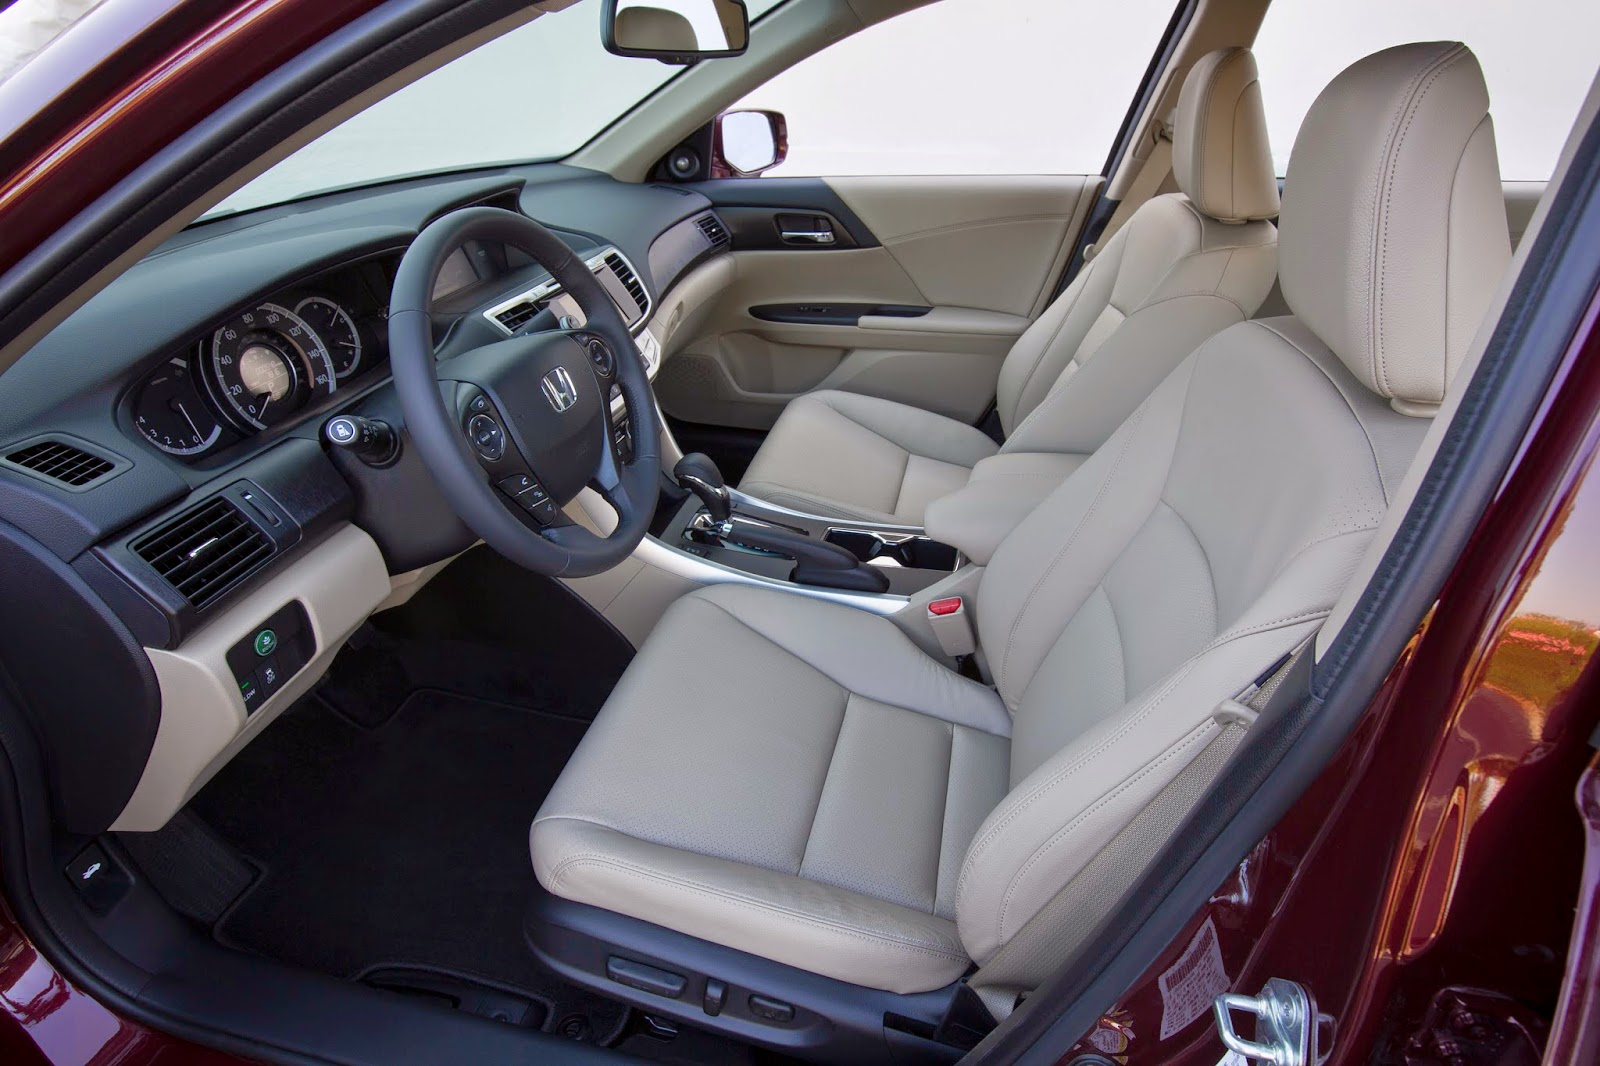 2015 Honda Accord EX-L interior view